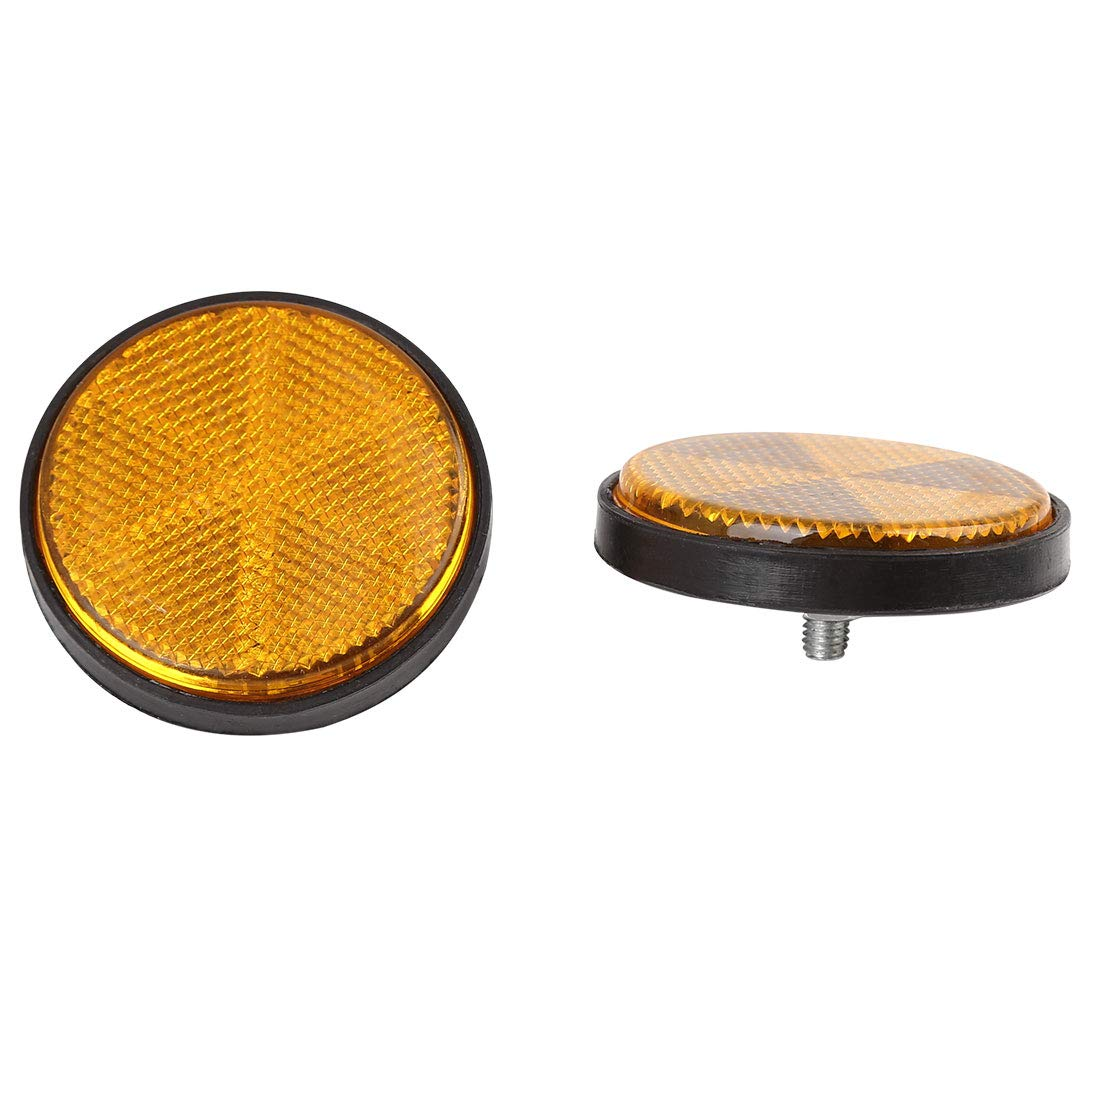 uxcell 2pcs 5mm Yellow Plastic Screw Mount Reflective Warning Motorcycle Reflector